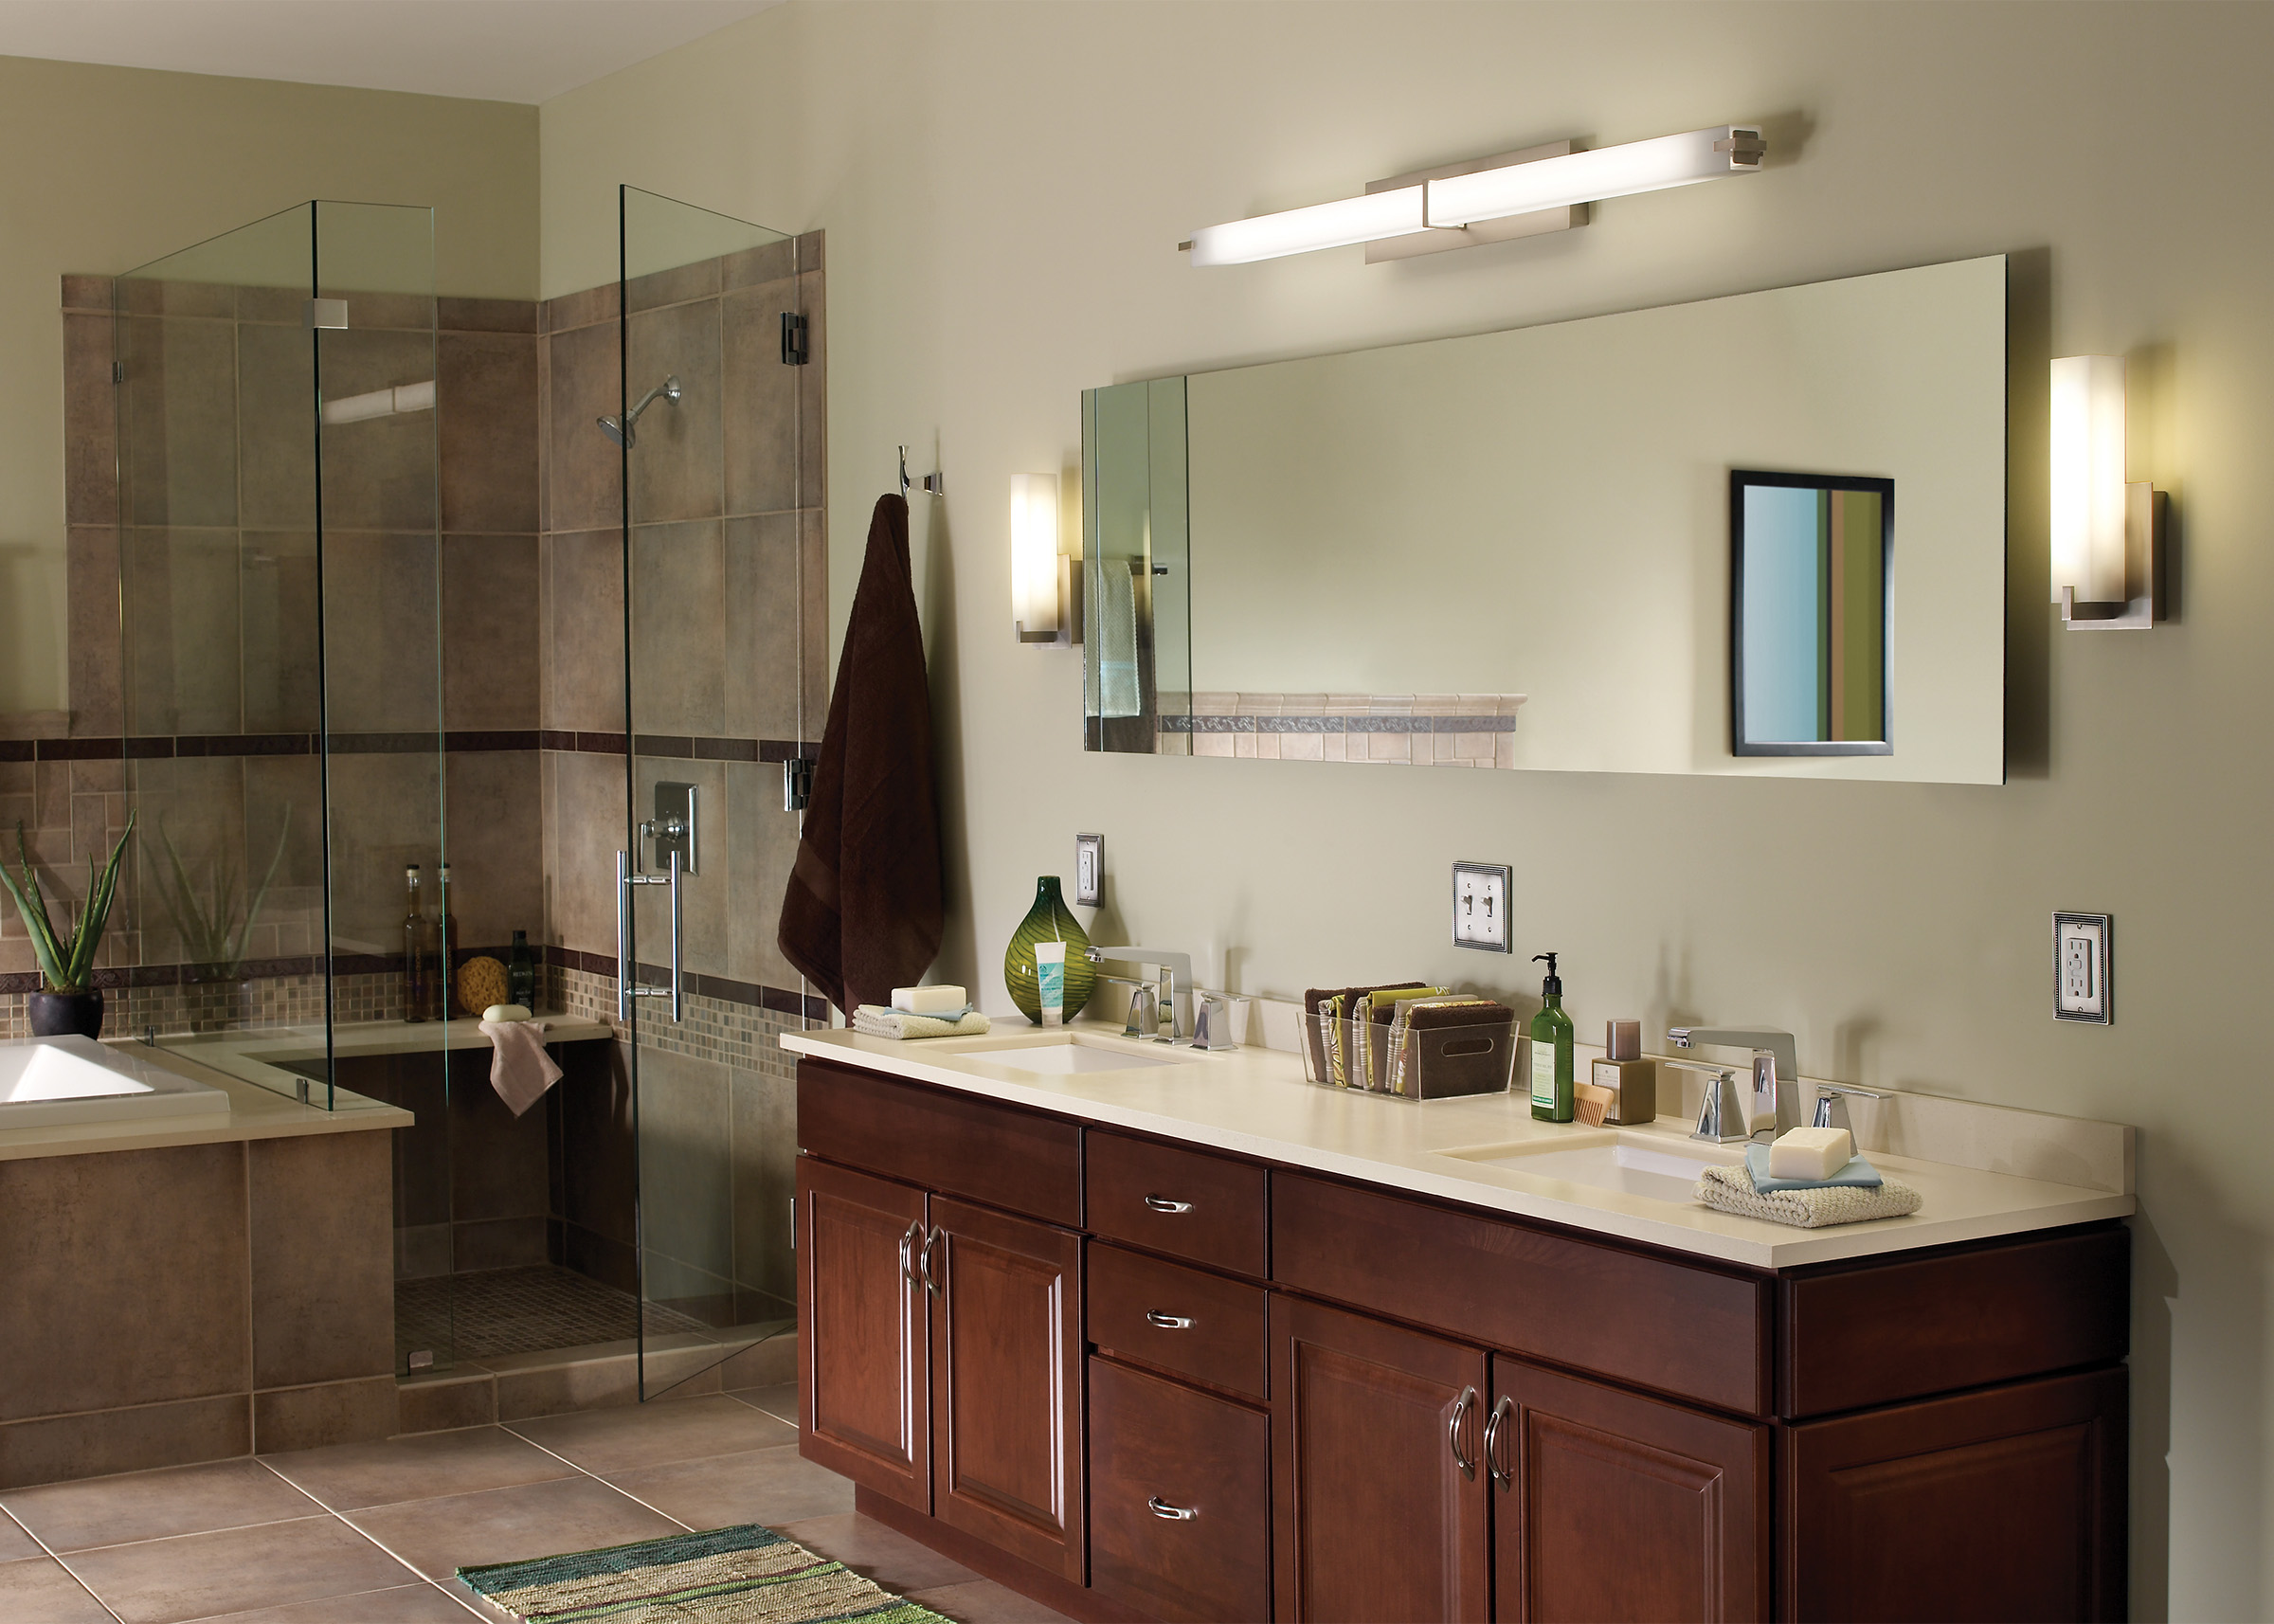 Bathroom Lighting And Mirrors Design do i need damp rated lights for my bathroom? - flip the switch